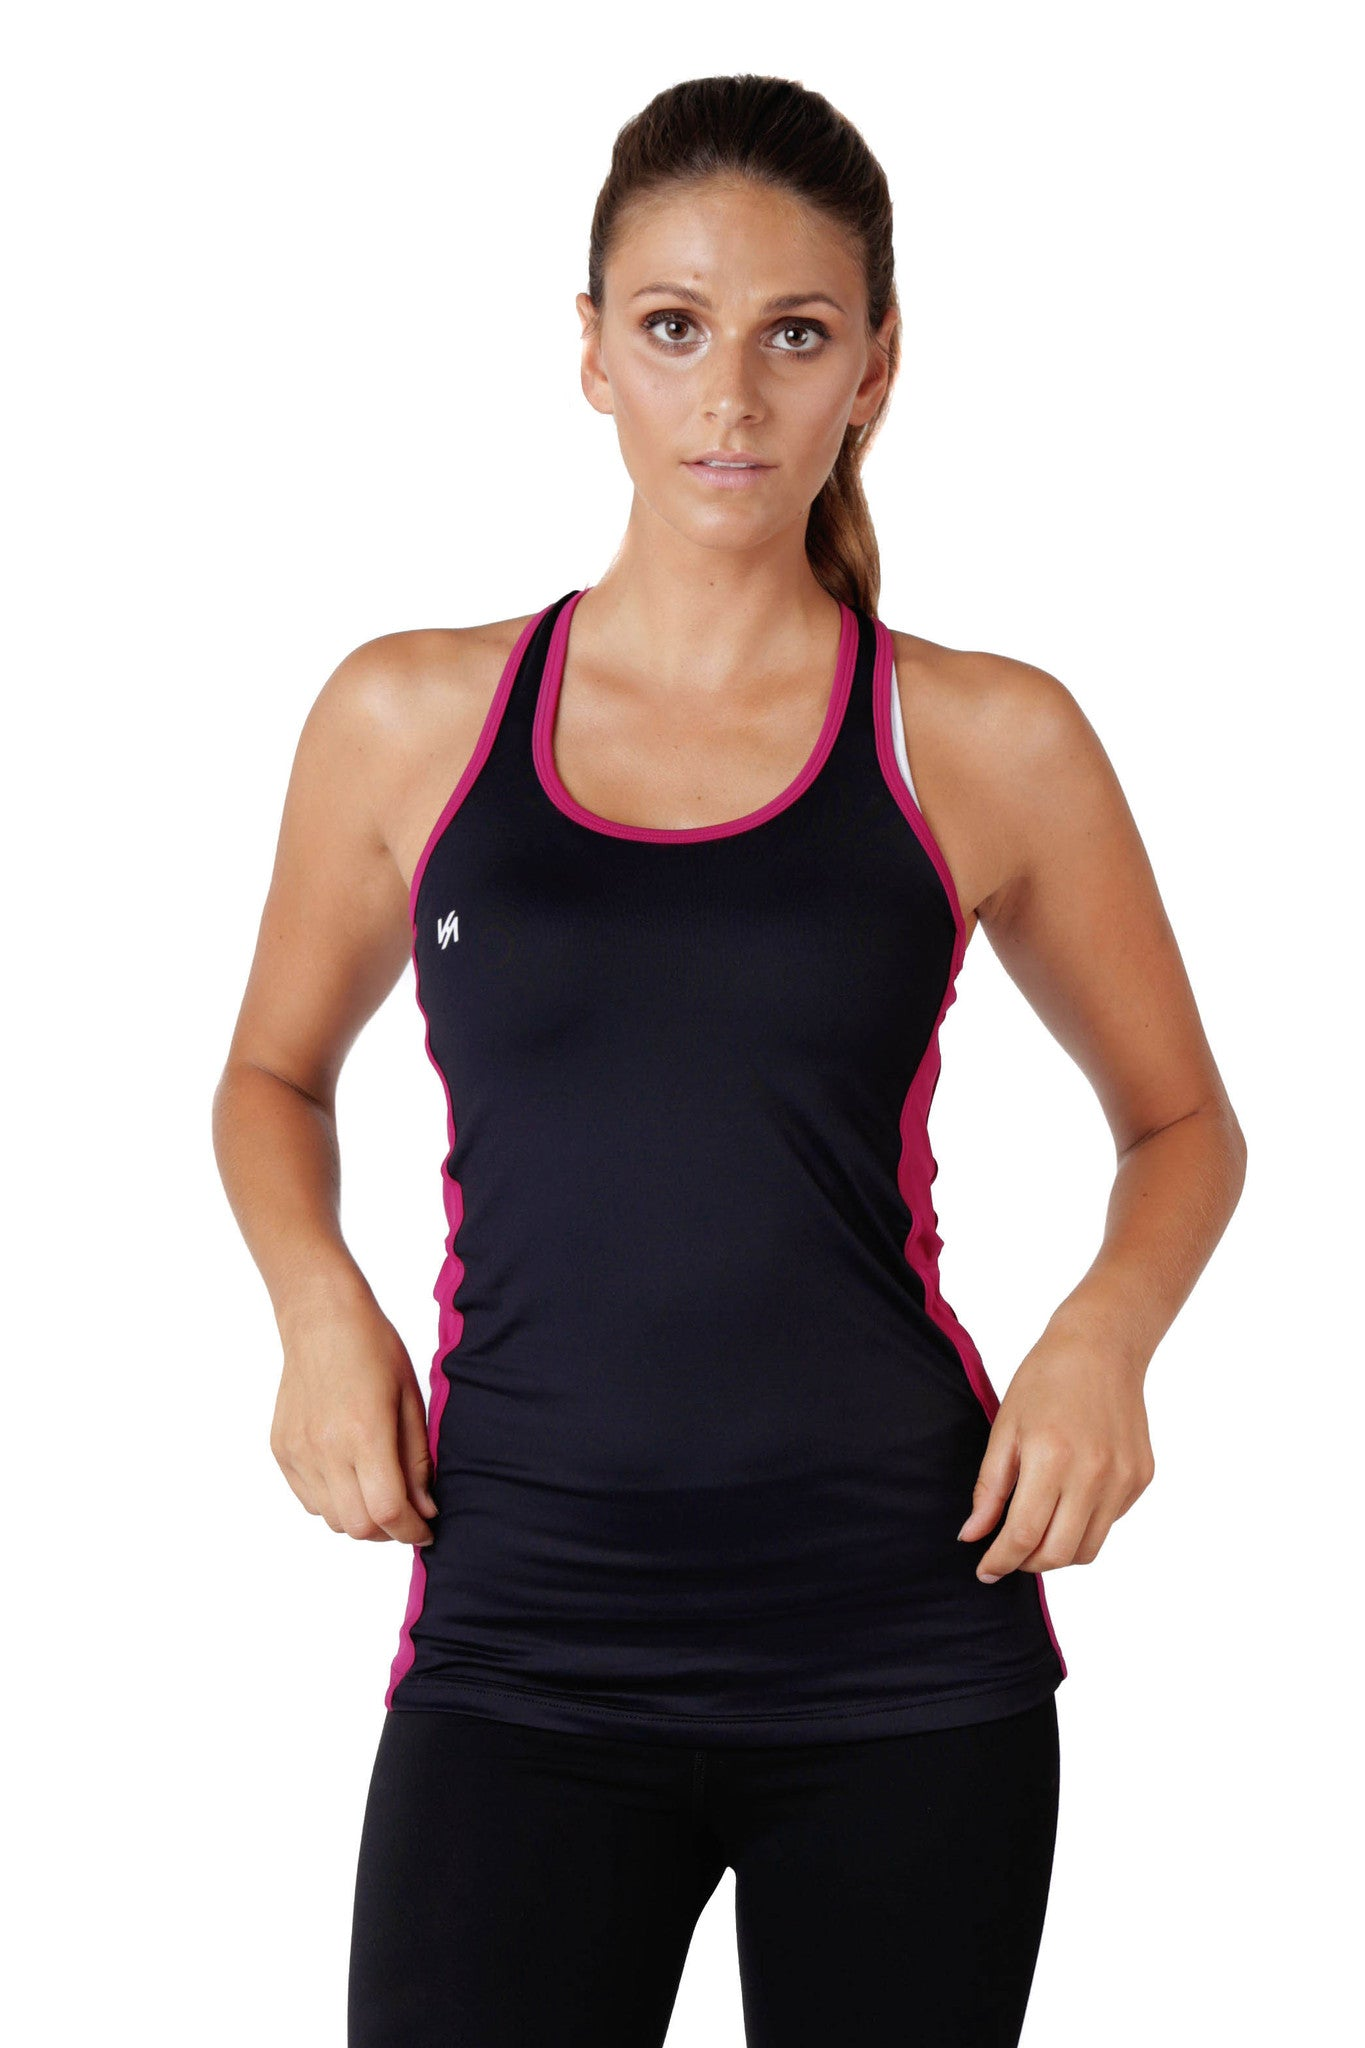 Model wearing black and pink tank top with KA logo